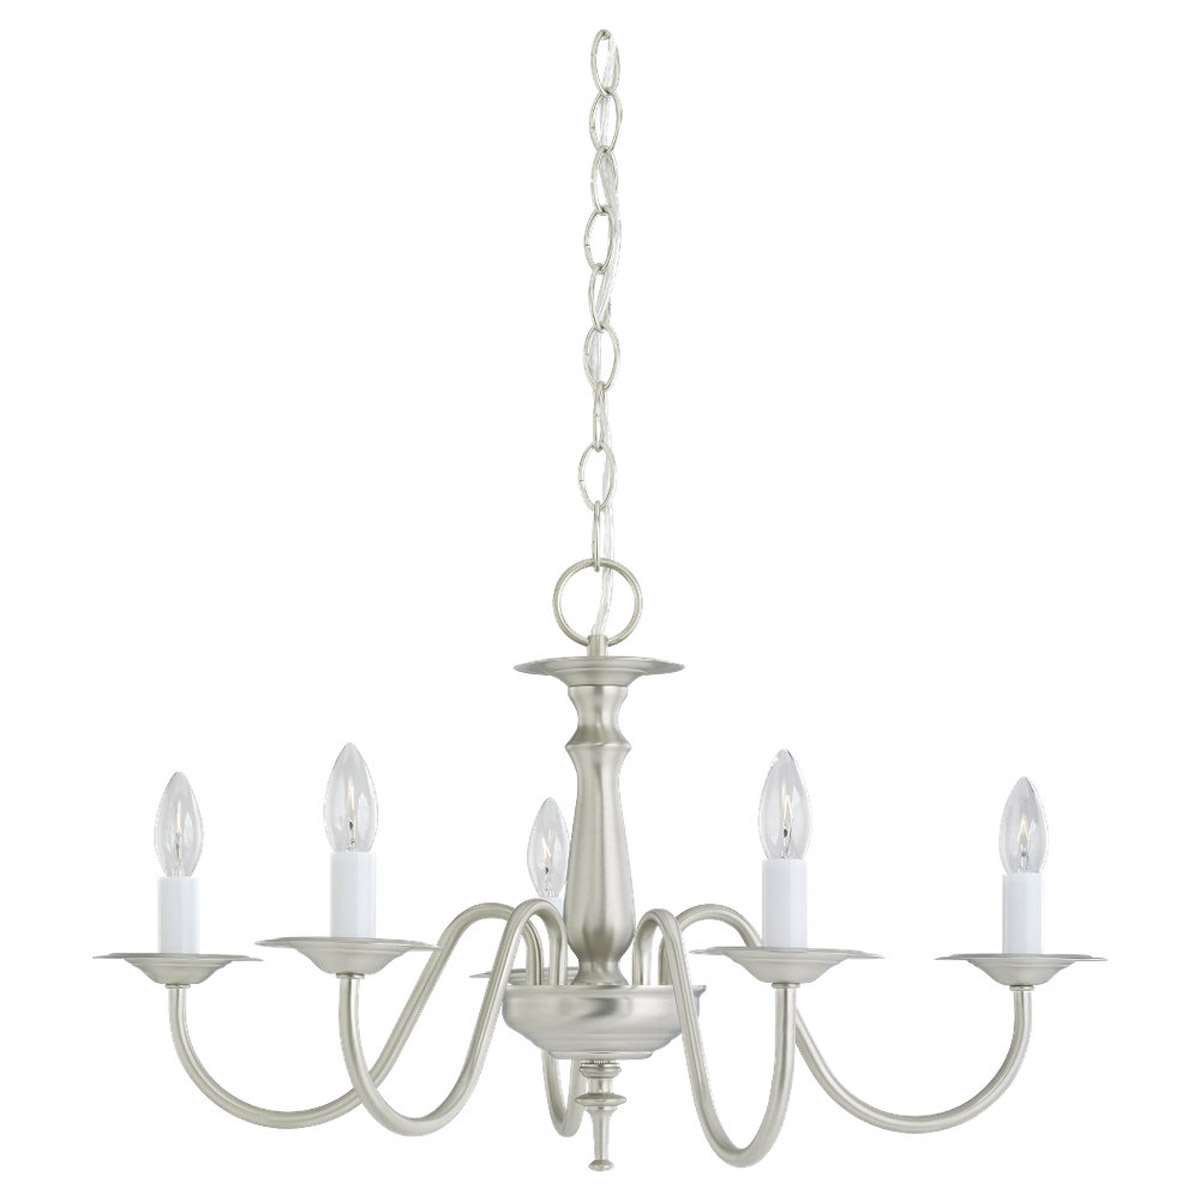 Sea Gull Lighting Traditional 5 Light Chandelier in Brushed Nickel 3121-962